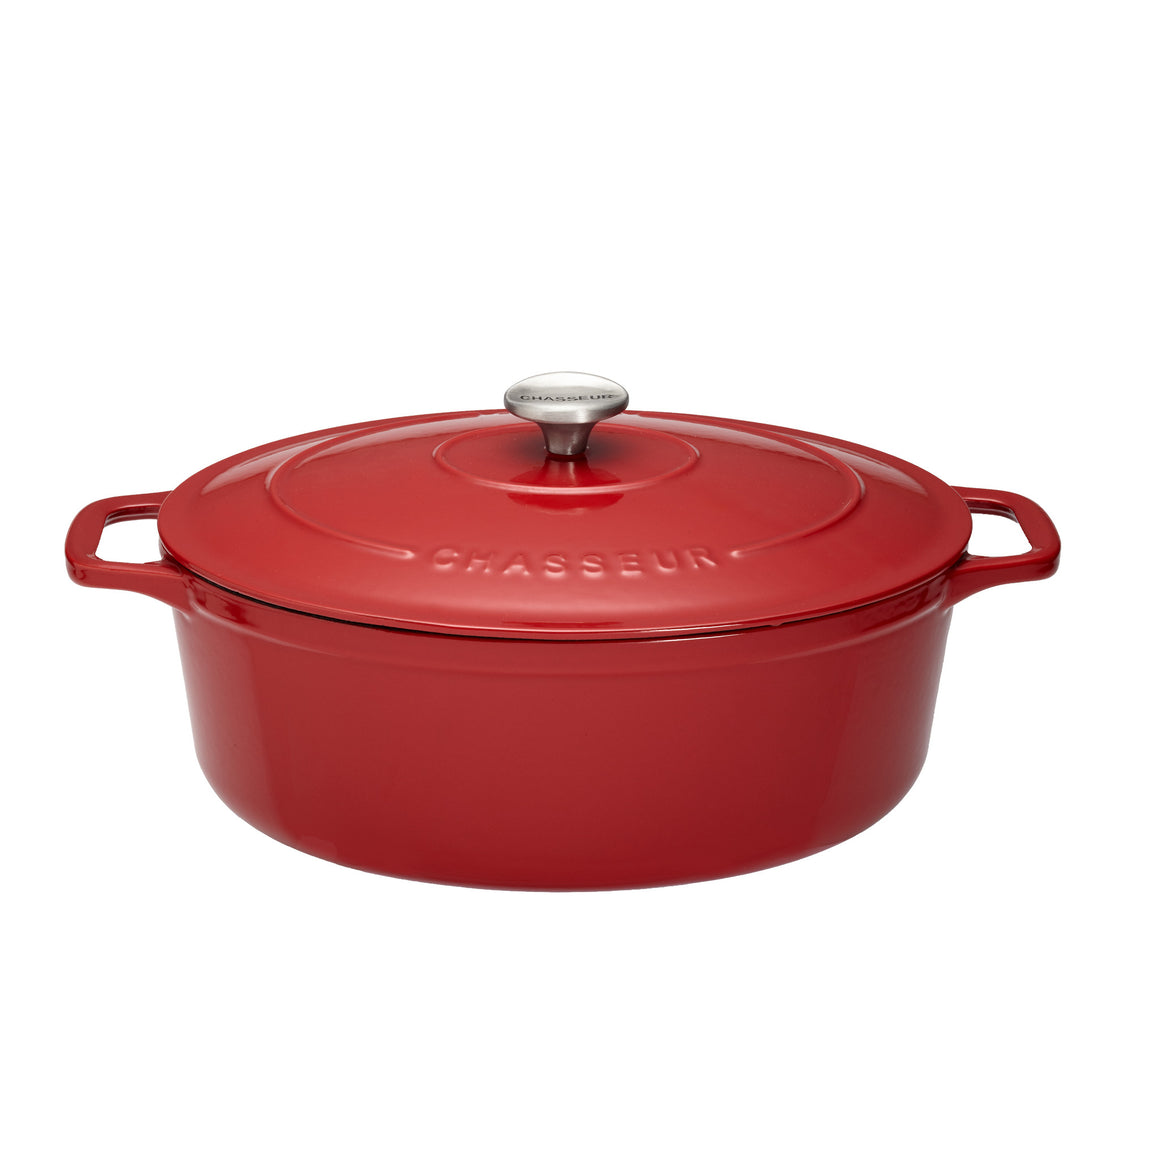 Oval Casserole Pot - Chilli Red 4.5L - Chasseur